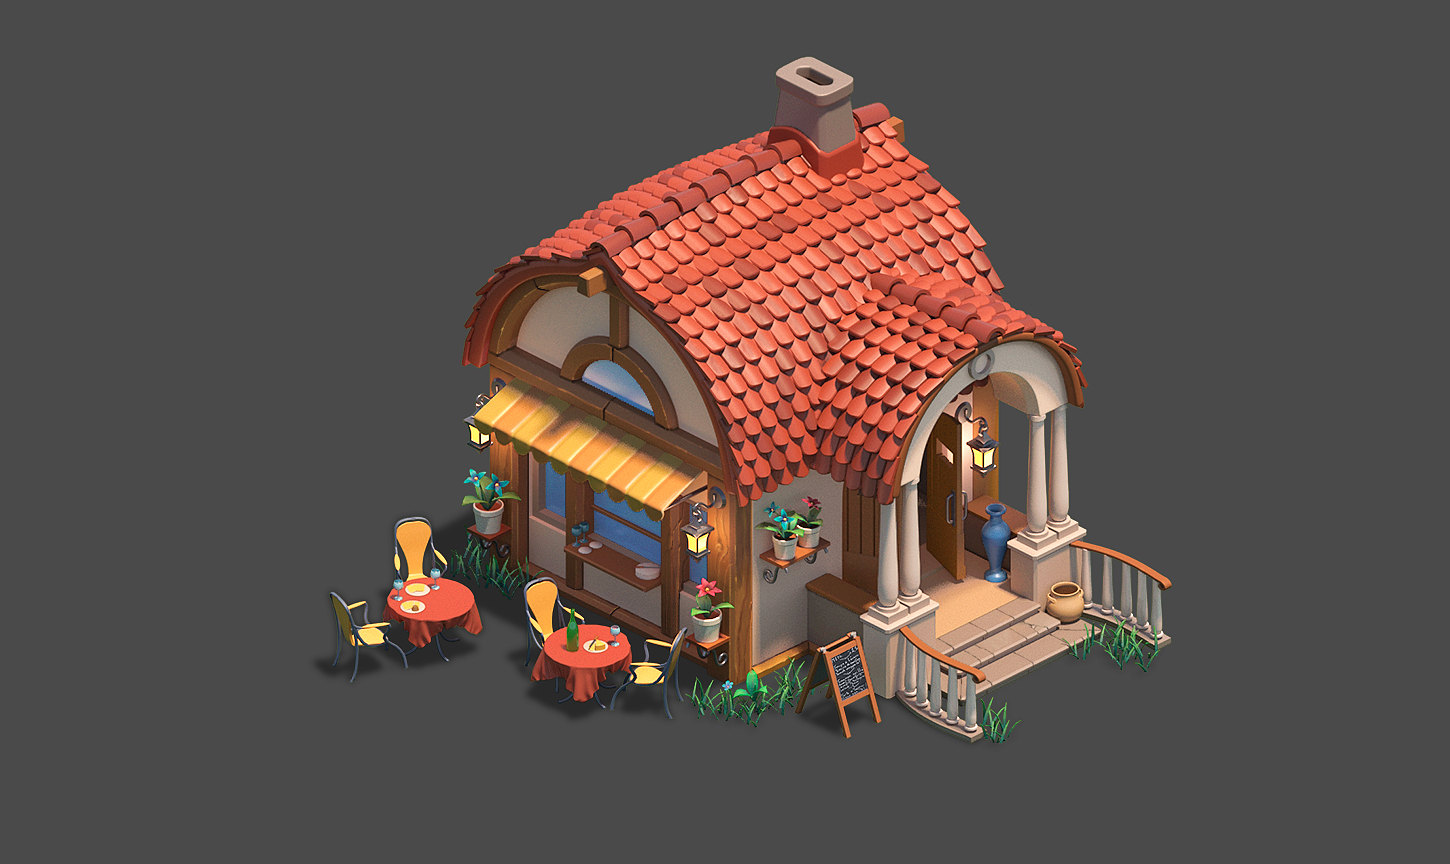 Iso_cafe_1450 | ✏️2D/3D Environment Artist PRG/Action/RTS/Moba/Isometric